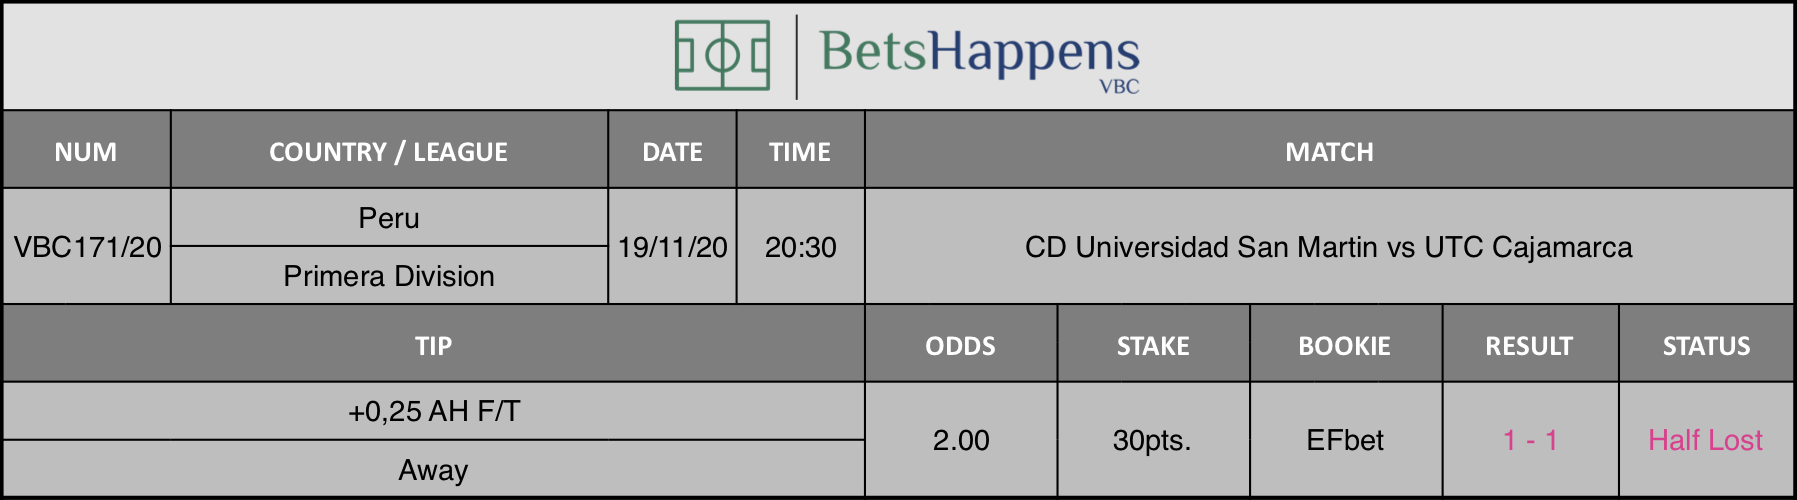 Results of our tip for the CD Universidad San Martin vs UTC Cajamarca match where +0,25 AH F/T Away is recommended.